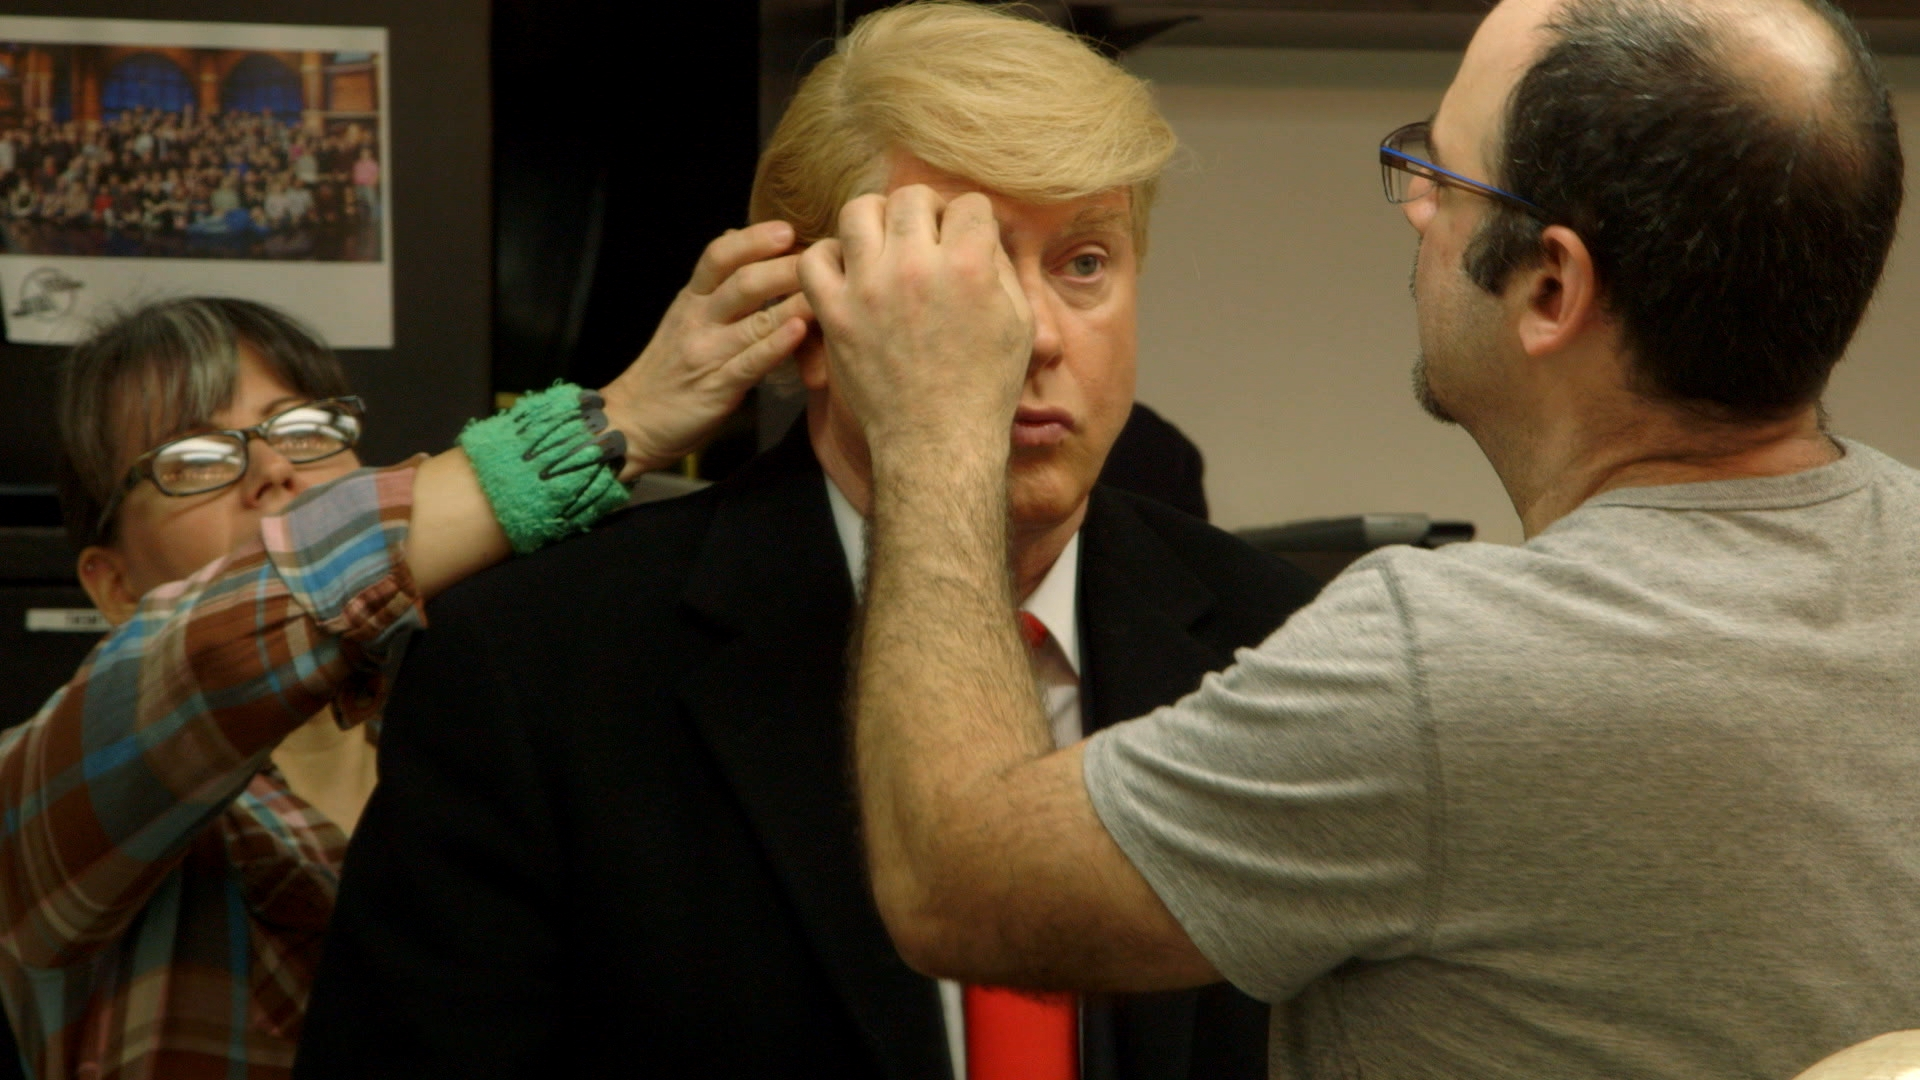 Darrell Hammond getting make-up applied backstage at Saturday Night Live - From the documentary film Cracked Up.